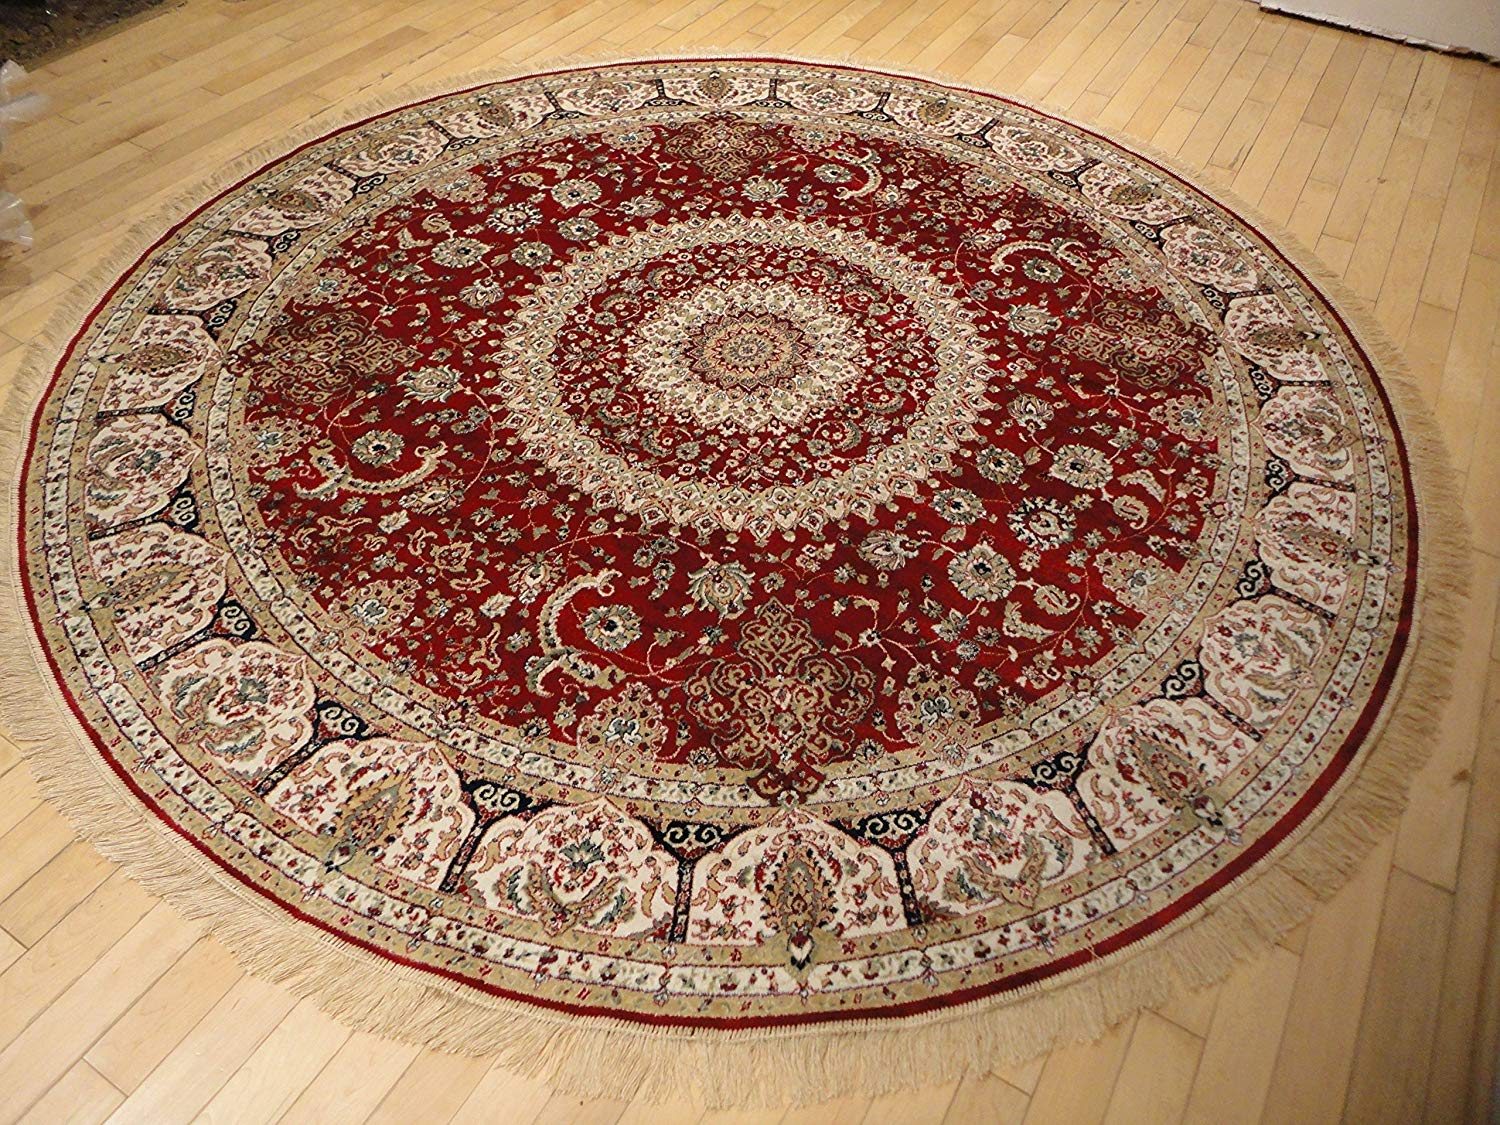 Circle rugs amazon.com: stunning silk persian area rugs traditional design red tabriz  8x8 round QGPVJPB